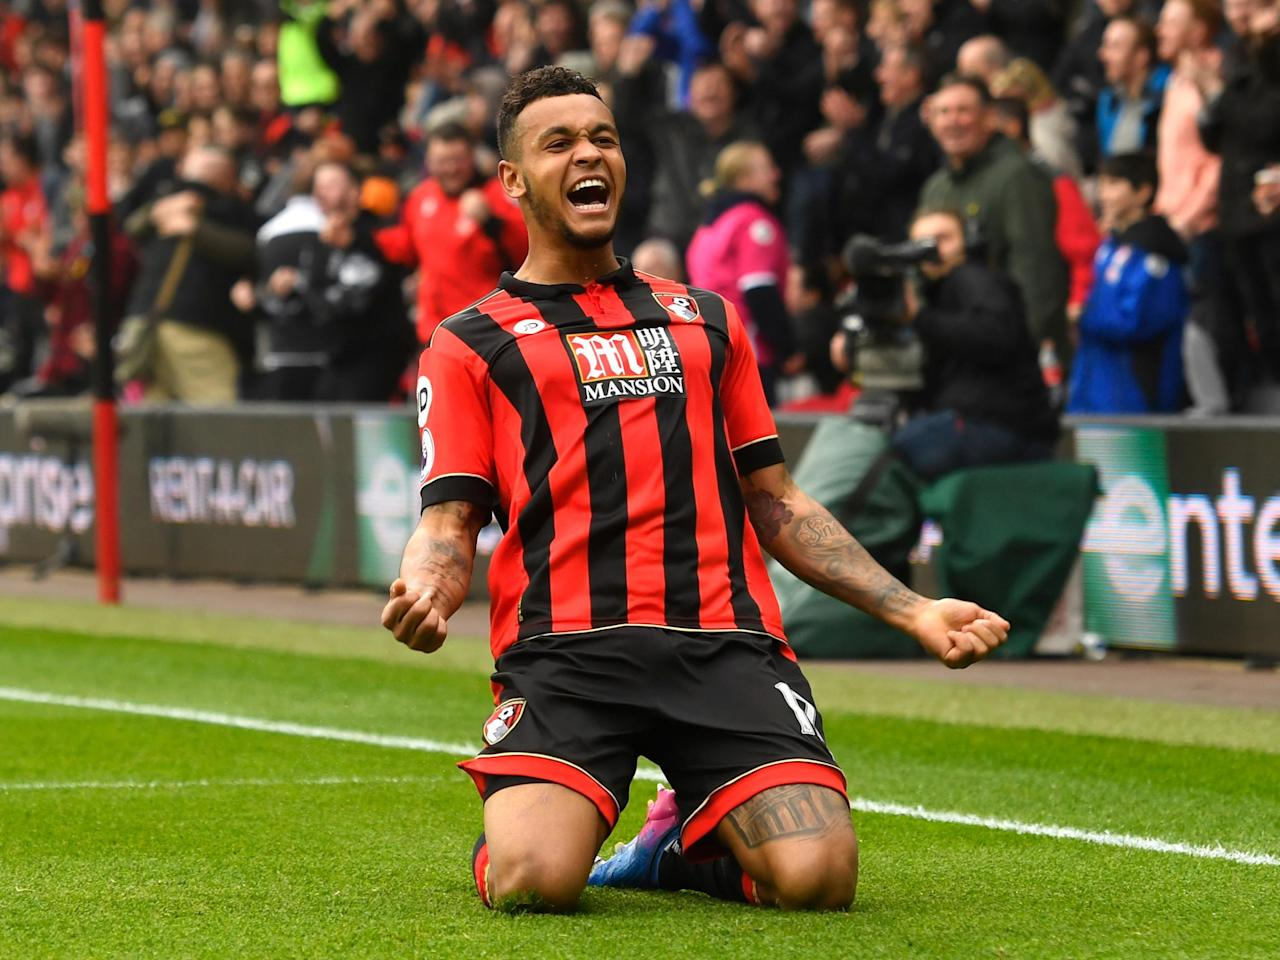 Tottenham transfer news: Bournemouth striker Josh King 'intrigued' by Spurs link but insists he is happy on south coast